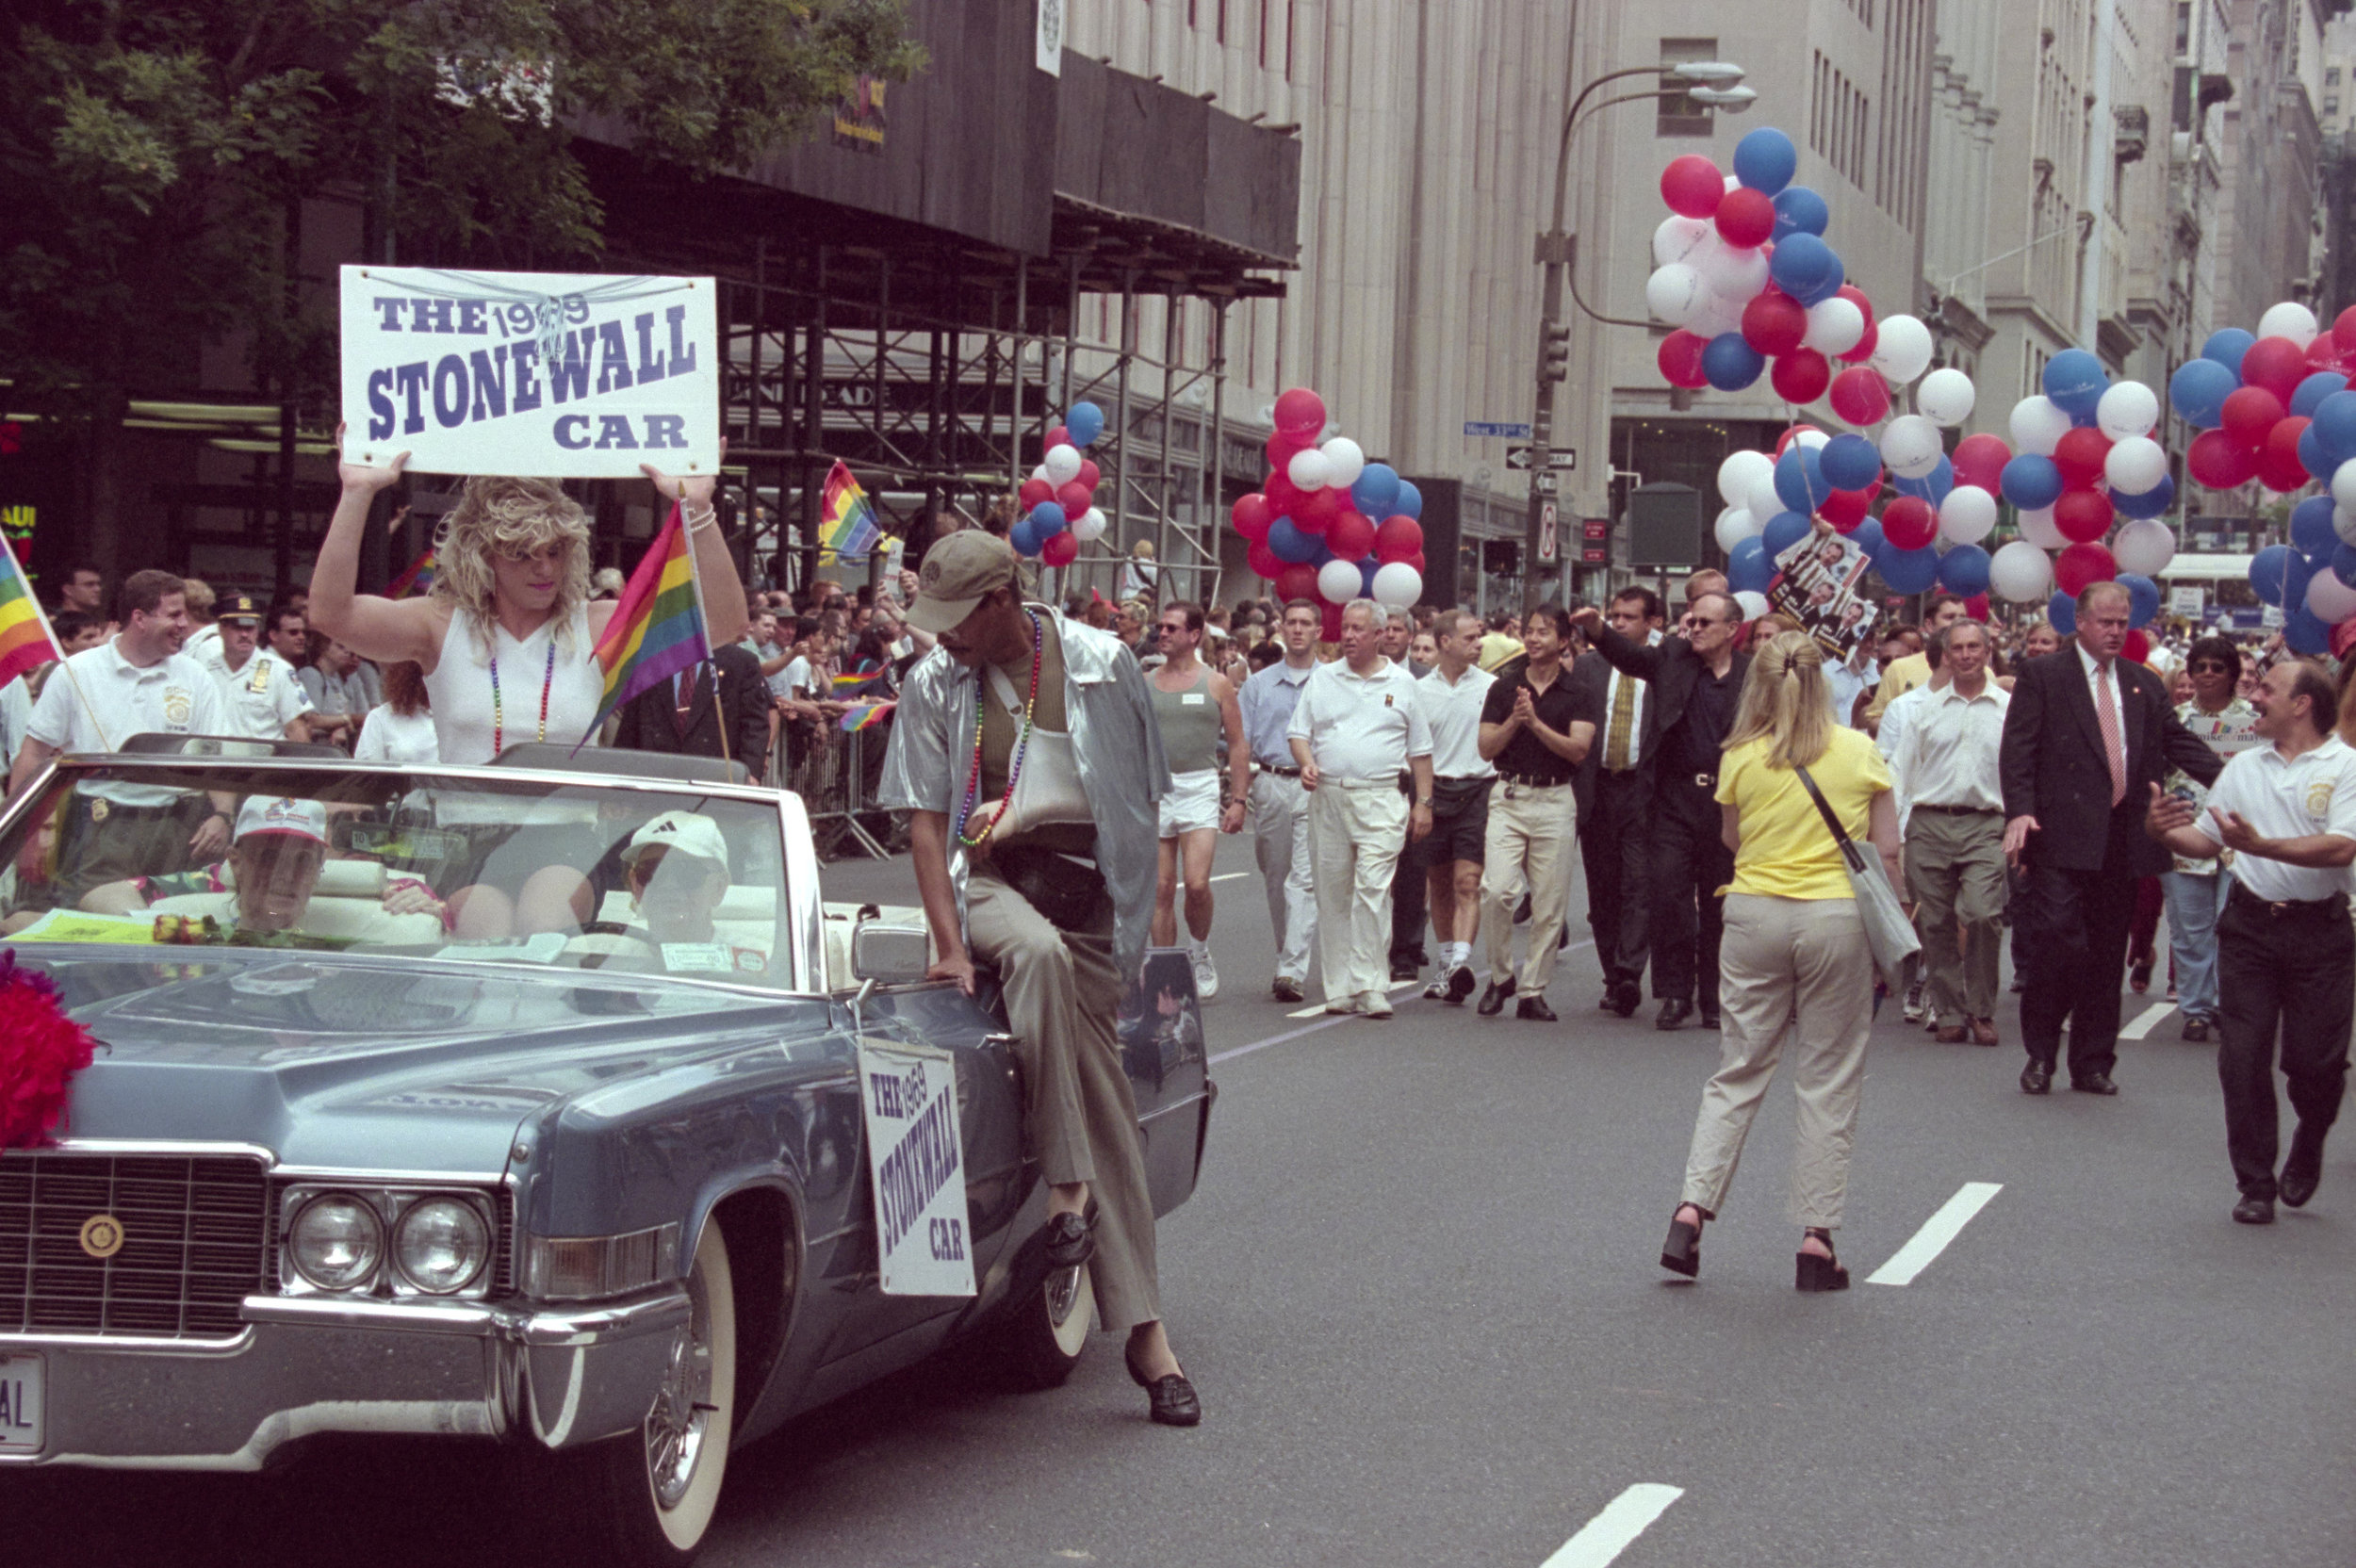 "Giuliani's photographers recorded his participation in the 1995, 1996, 2000 and 2001 Gay Pride parades. During the 2001 march on June 24, 2001, Giuliani was joined by the then candidate-for-mayor Michael Bloomberg. The ""Stonewall Car"" is a 1969 Cadillac Coupe de Ville convertible. Photographer: Edward Reed. Mayor Rudolph W. Giuliani Collection, NYC Municipal Archives."